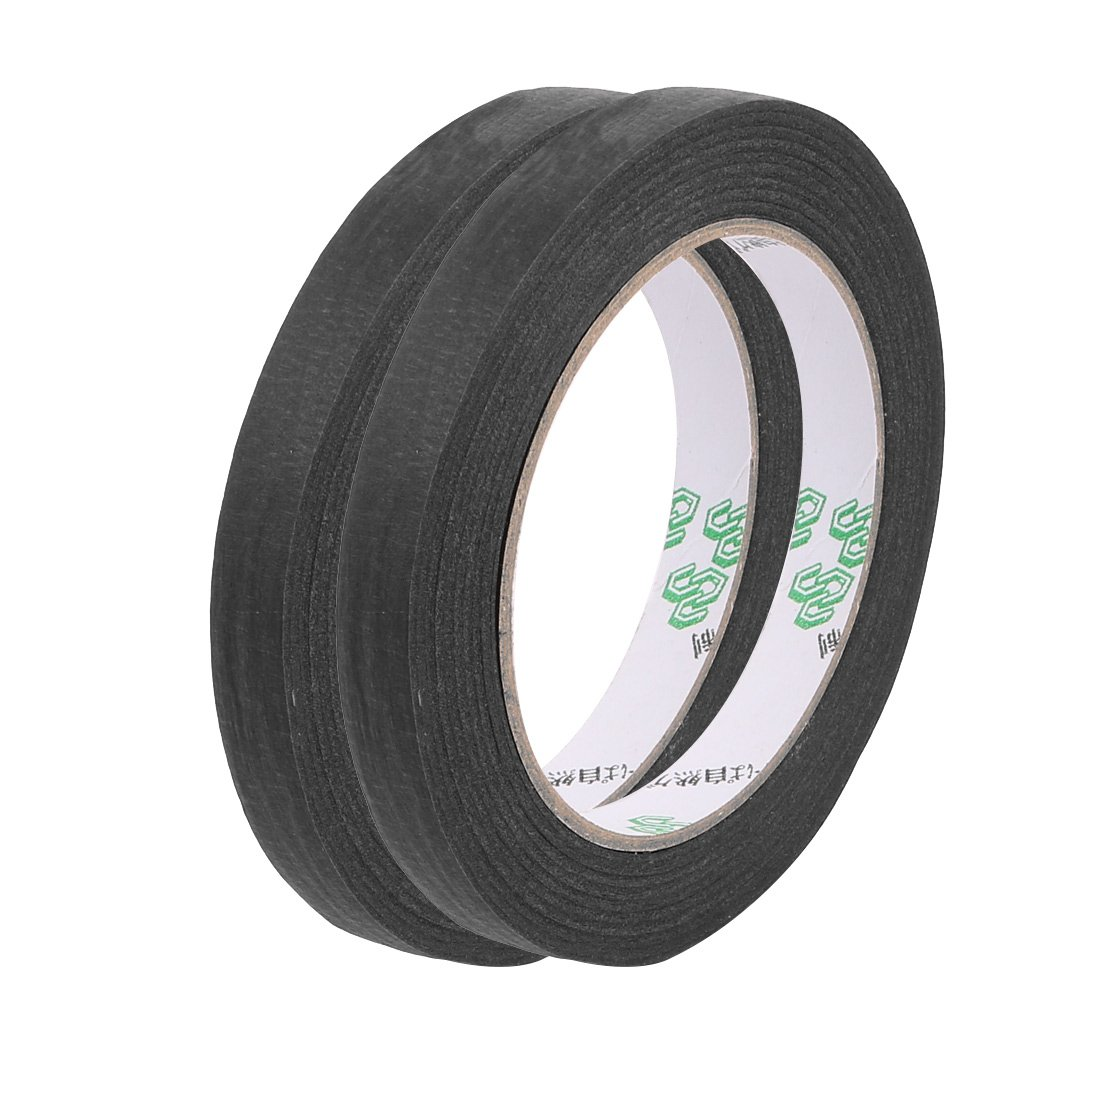 Crepe Paper Black Easy Release Masking tape for painters 55 yds Length x 0.5 inches Width 2pcs